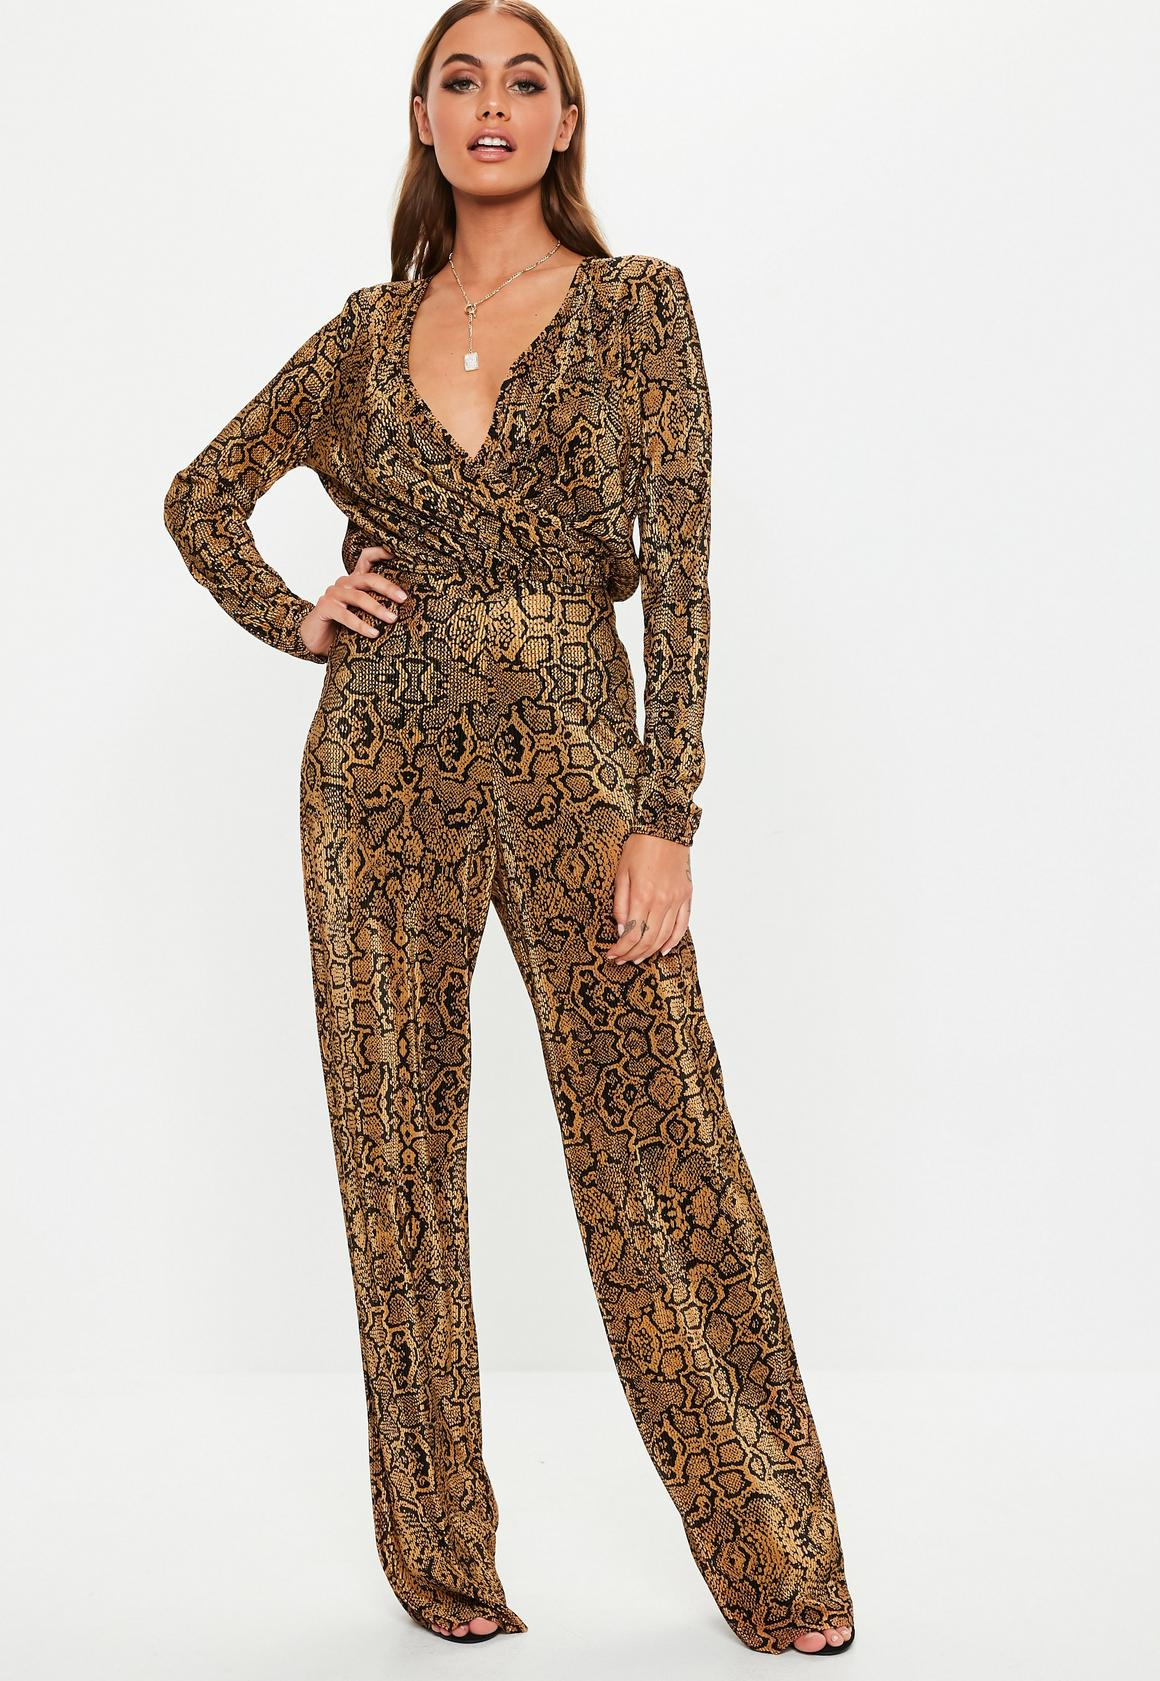 Missguided - pantalon large plissé marron imprimé serpent - 1